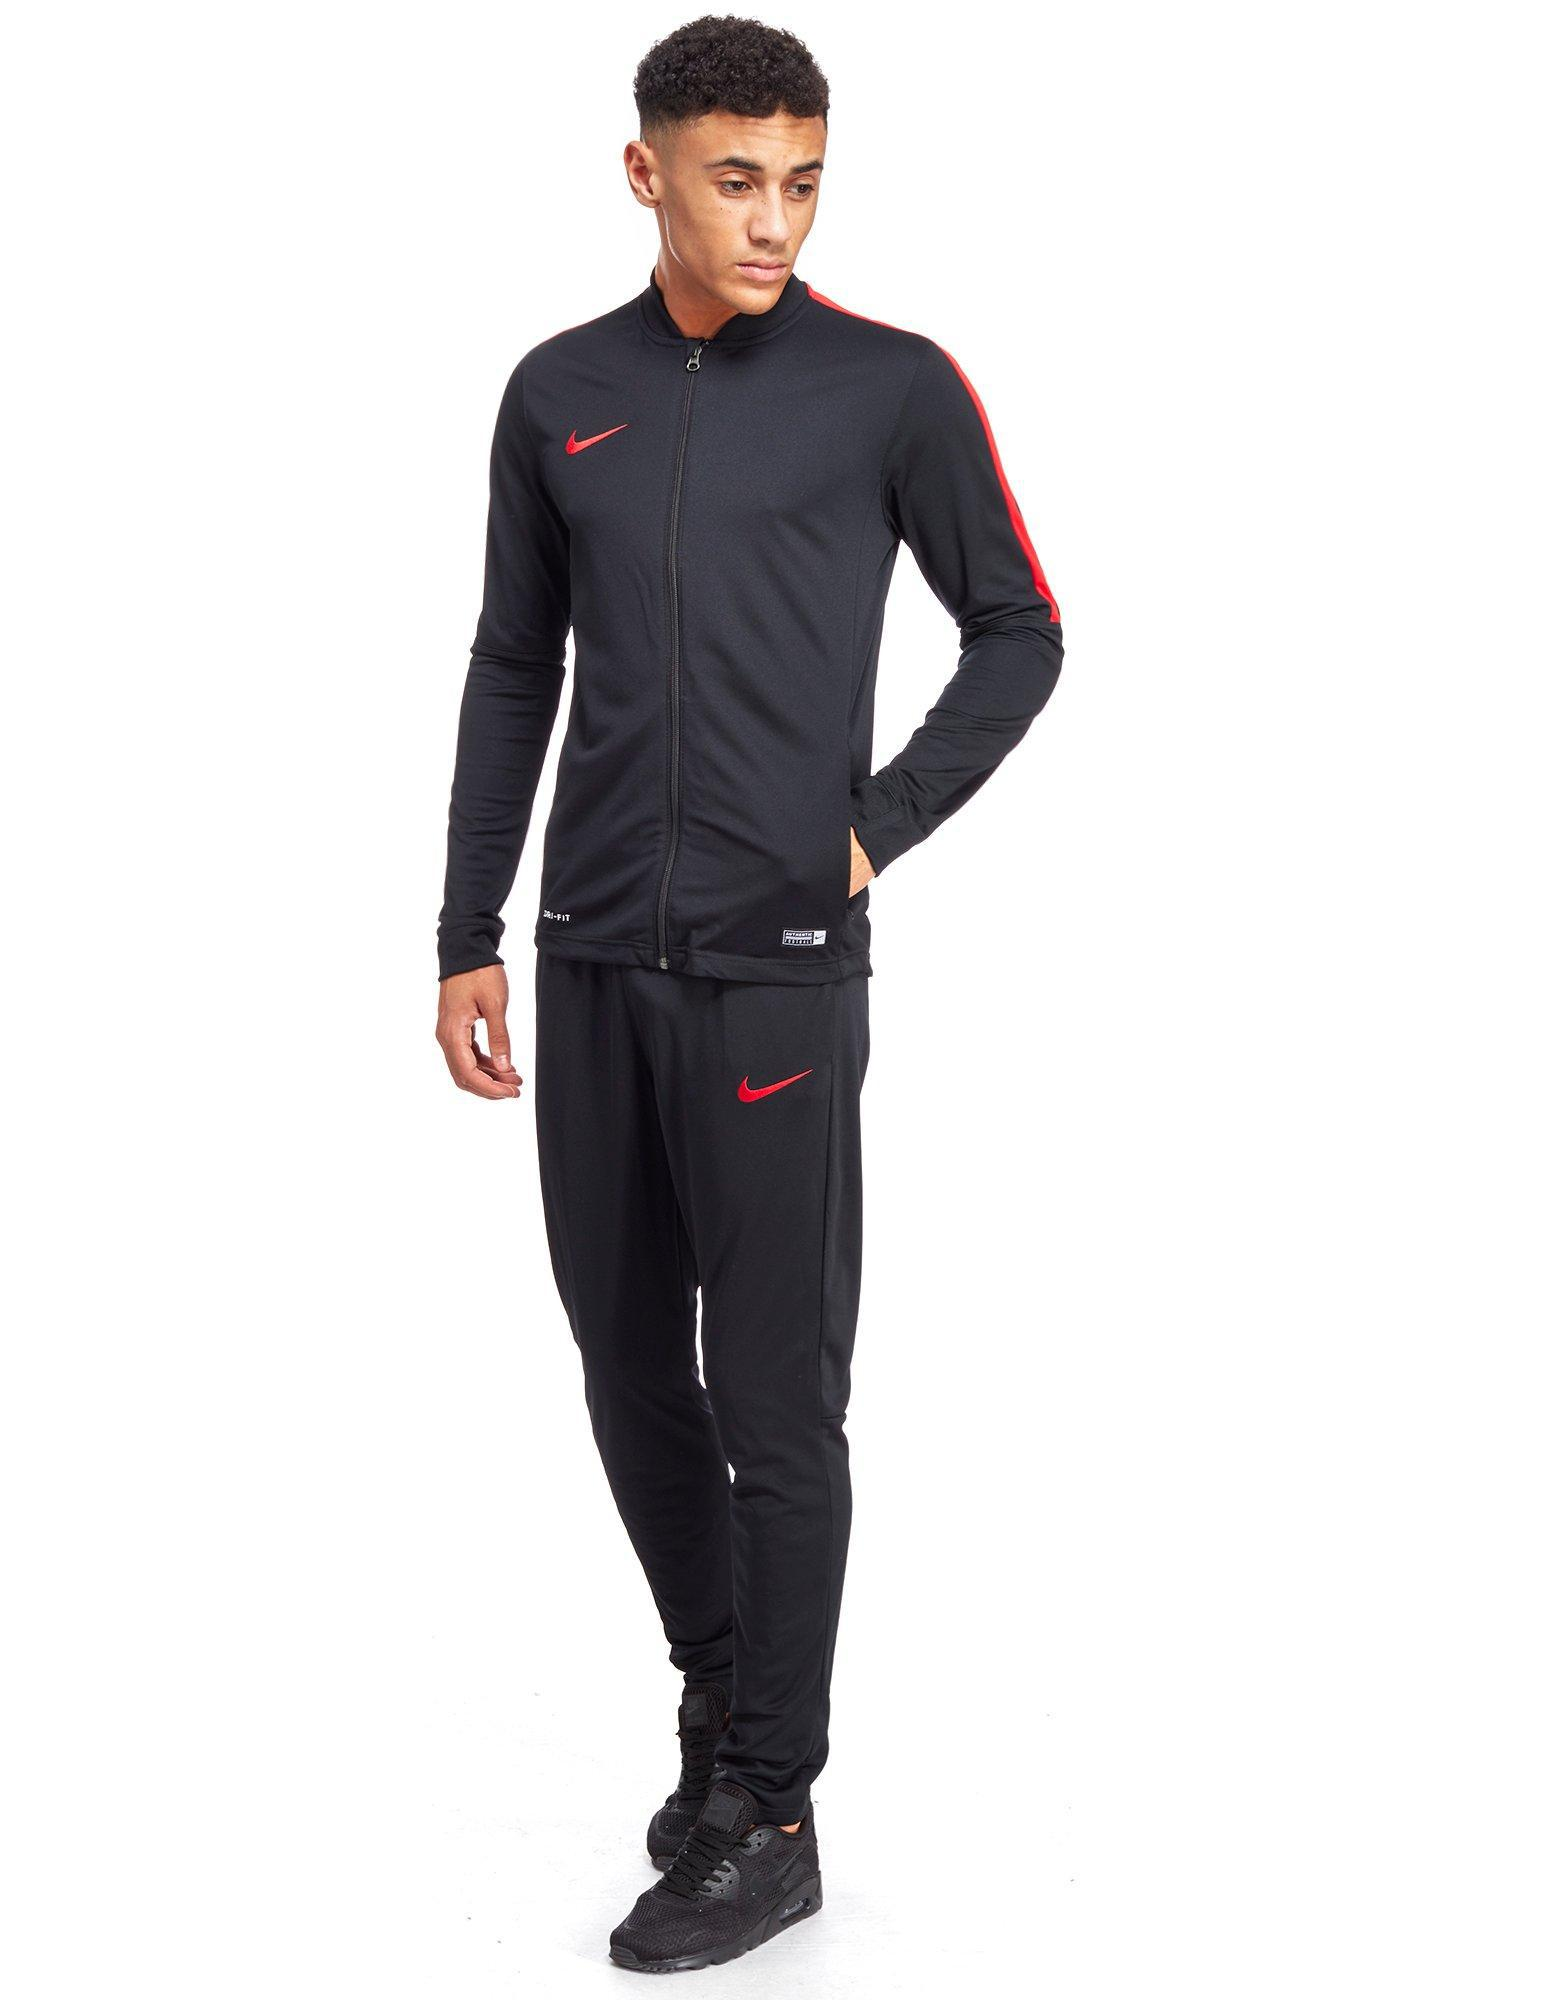 Lyst - Nike Academy Poly Tracksuit in Black for Men 82e67da2dc4a